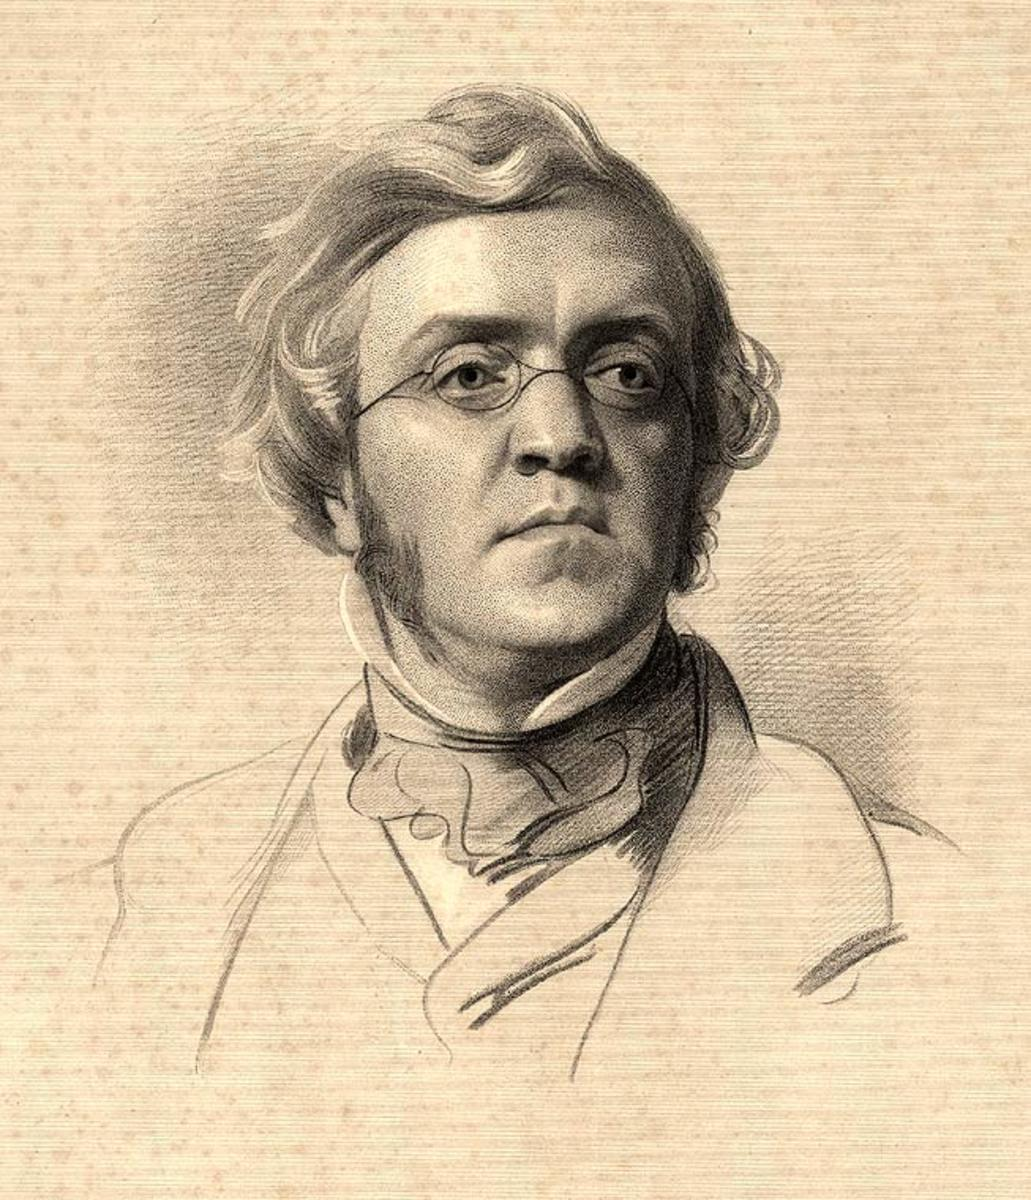 William Makepeace Thackeray. Most of the images of the writer make him look as though he has a nasty smell under his nose.